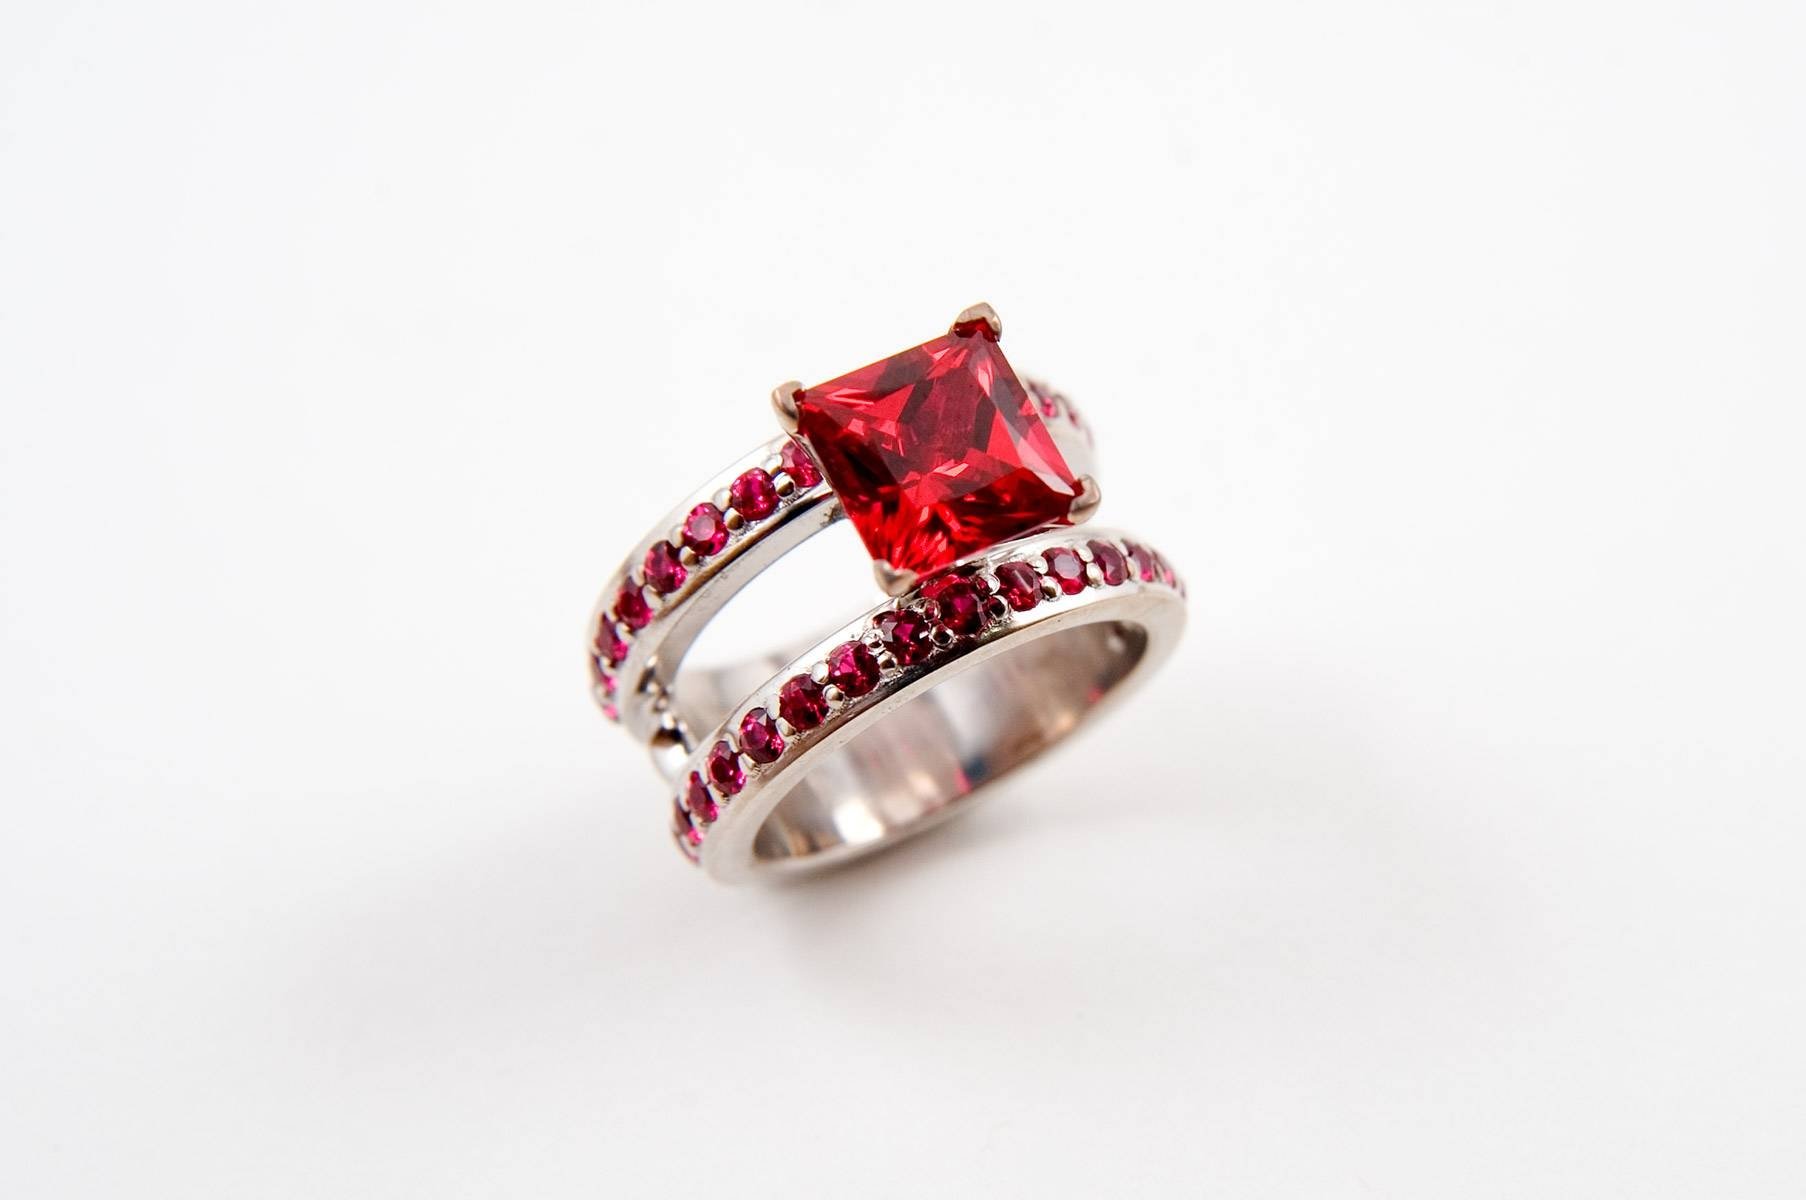 Wedding Rings : Cartier Engagement Rings Ruby Wedding Band Ruby In Most Up To Date Ruby Anniversary Rings (Gallery 9 of 25)